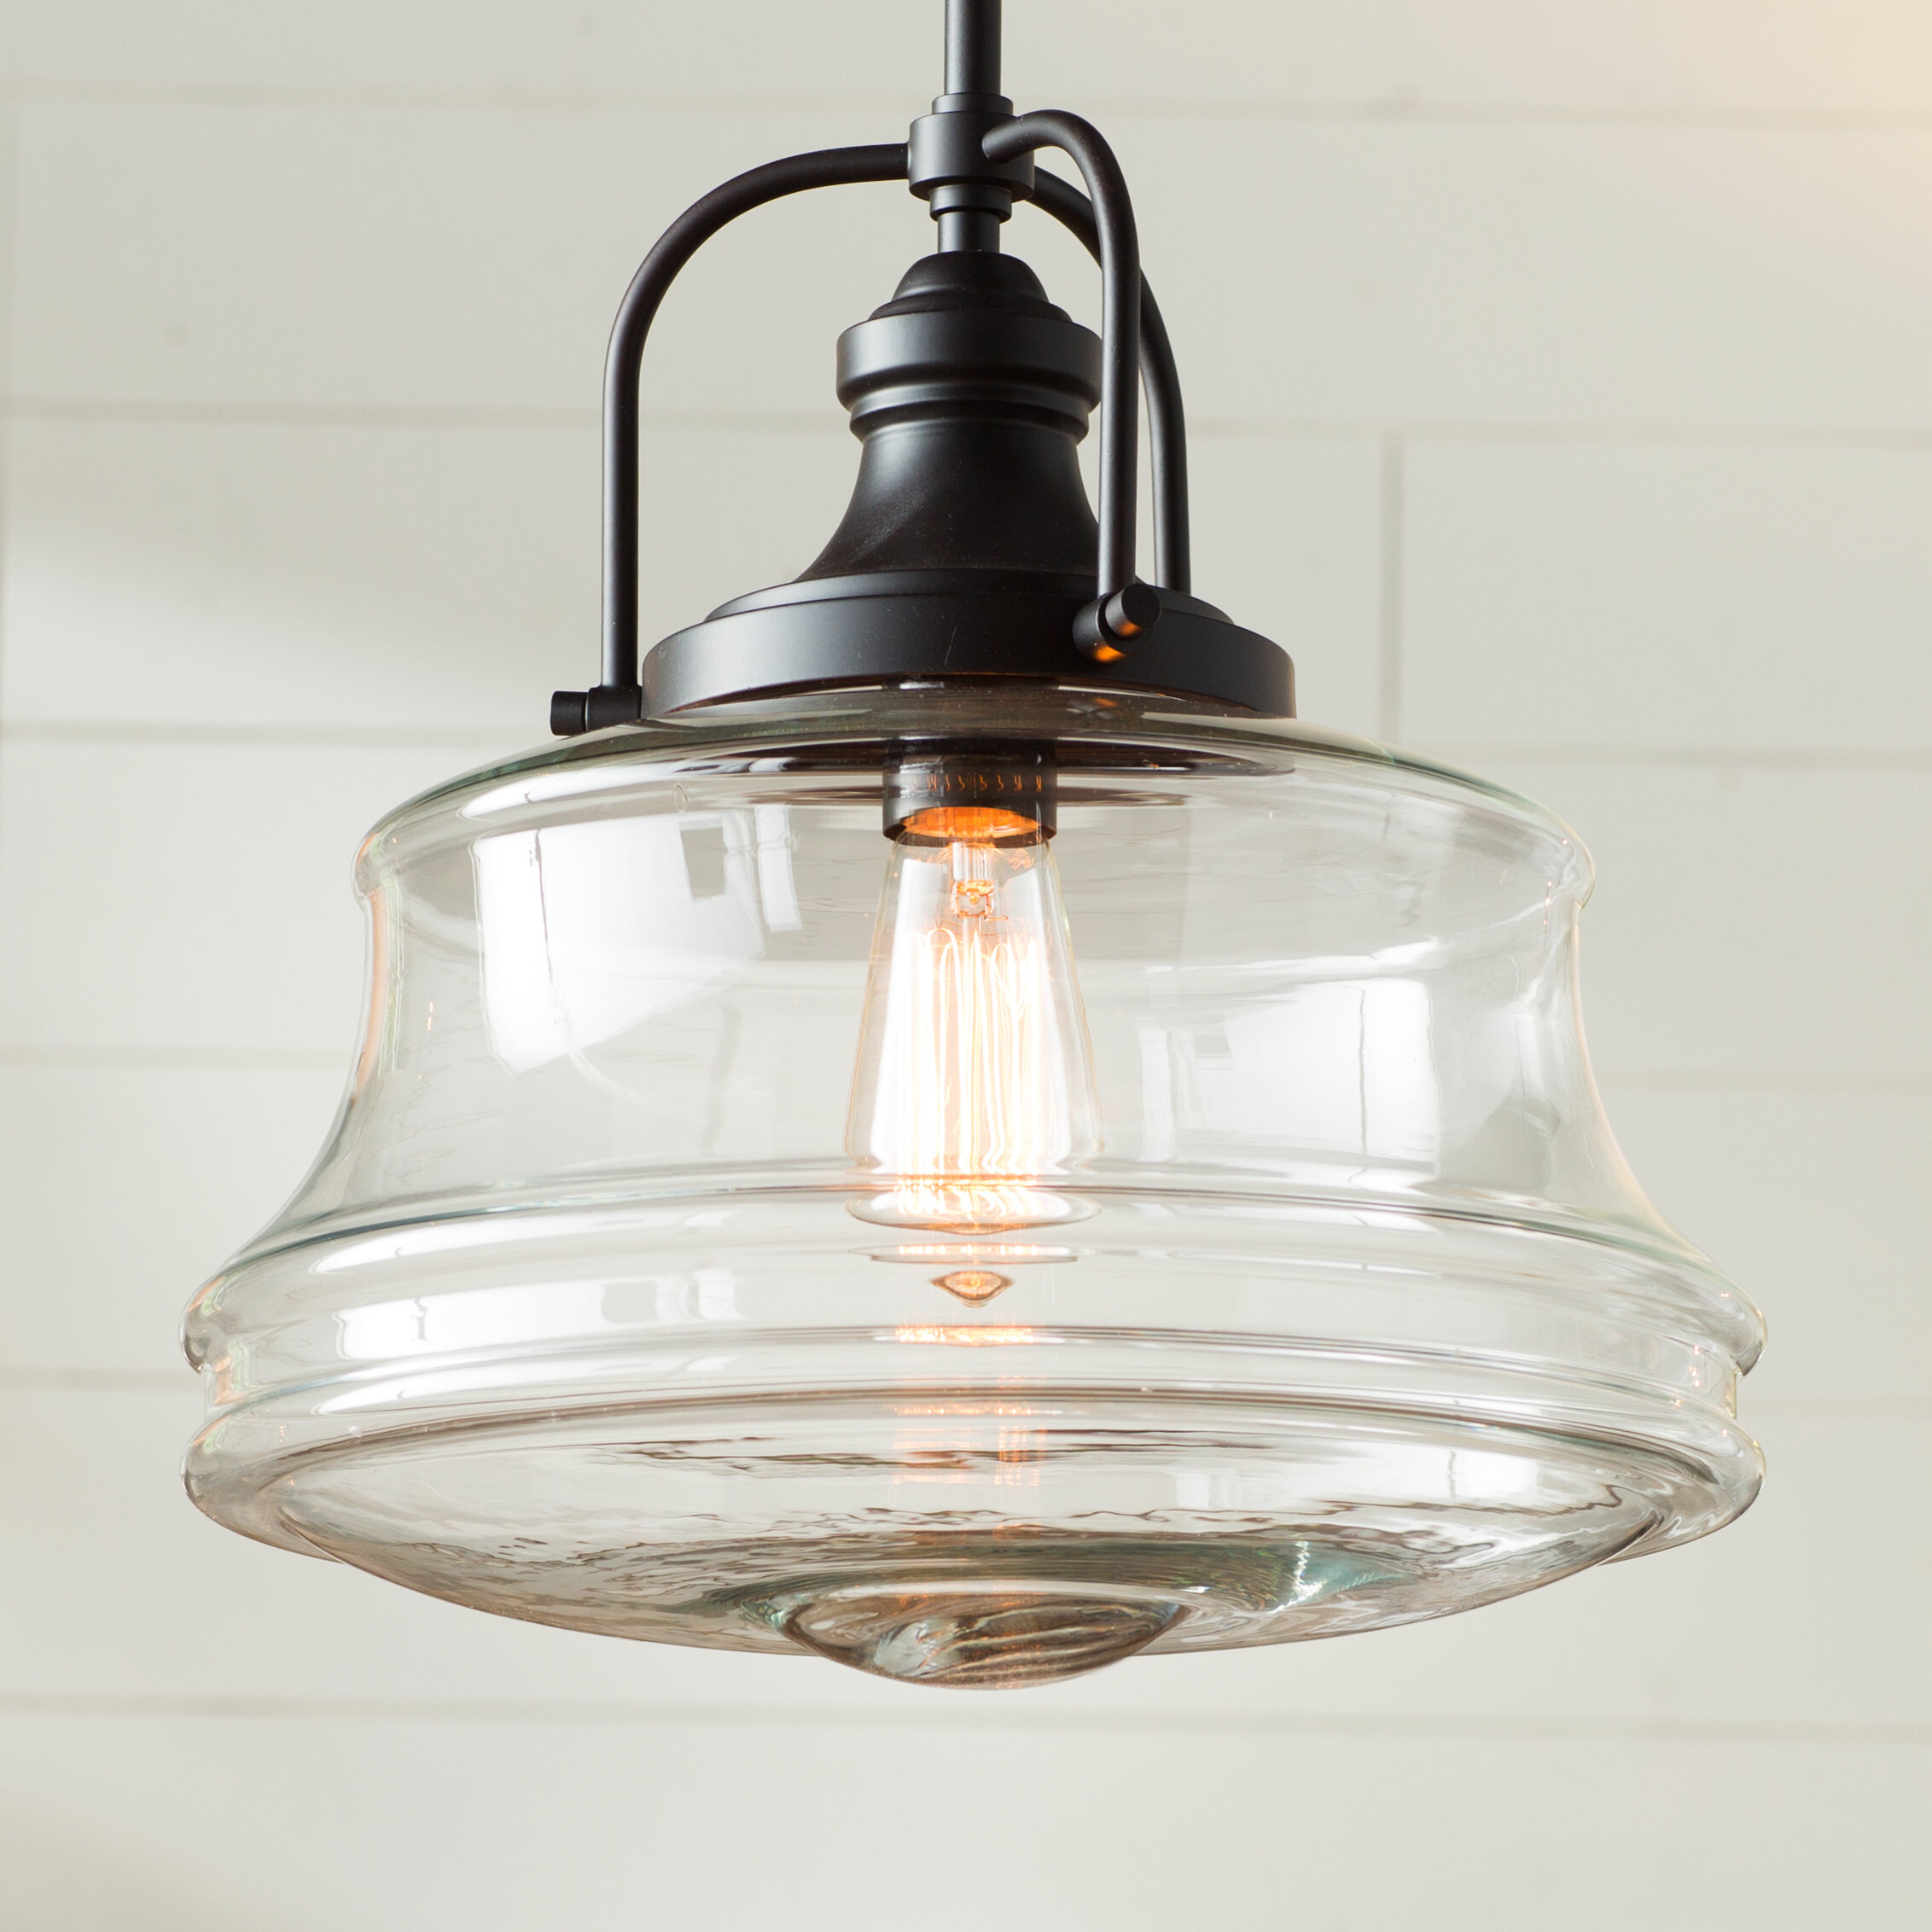 Nadine 1 Light Single Schoolhouse Pendant